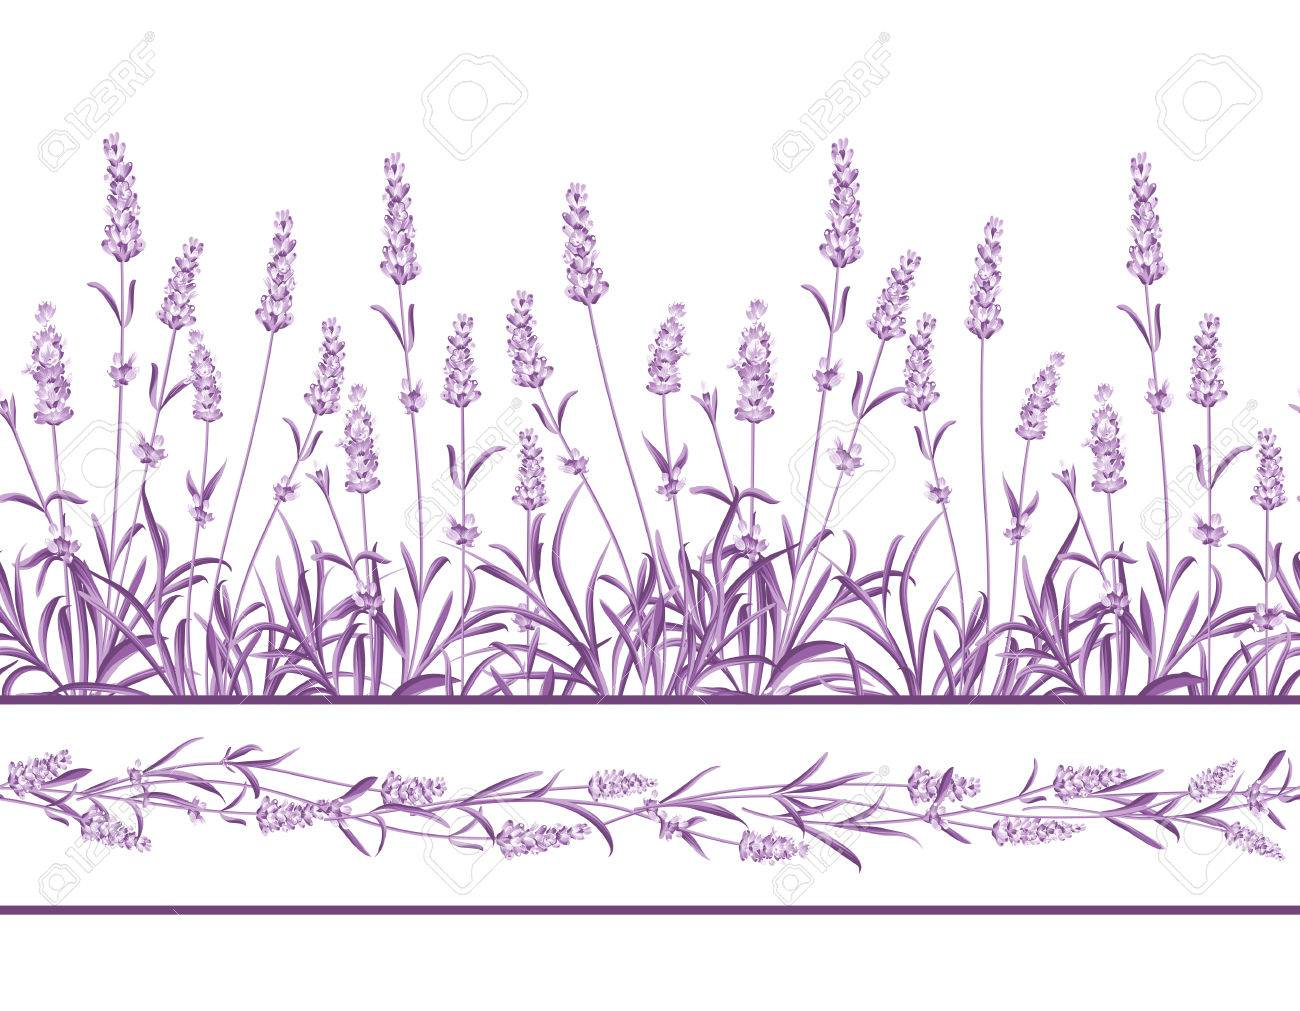 The Lavender Seamless frame line. Bunch of lavender flowers on a white background. Vector illustration. - 50920413